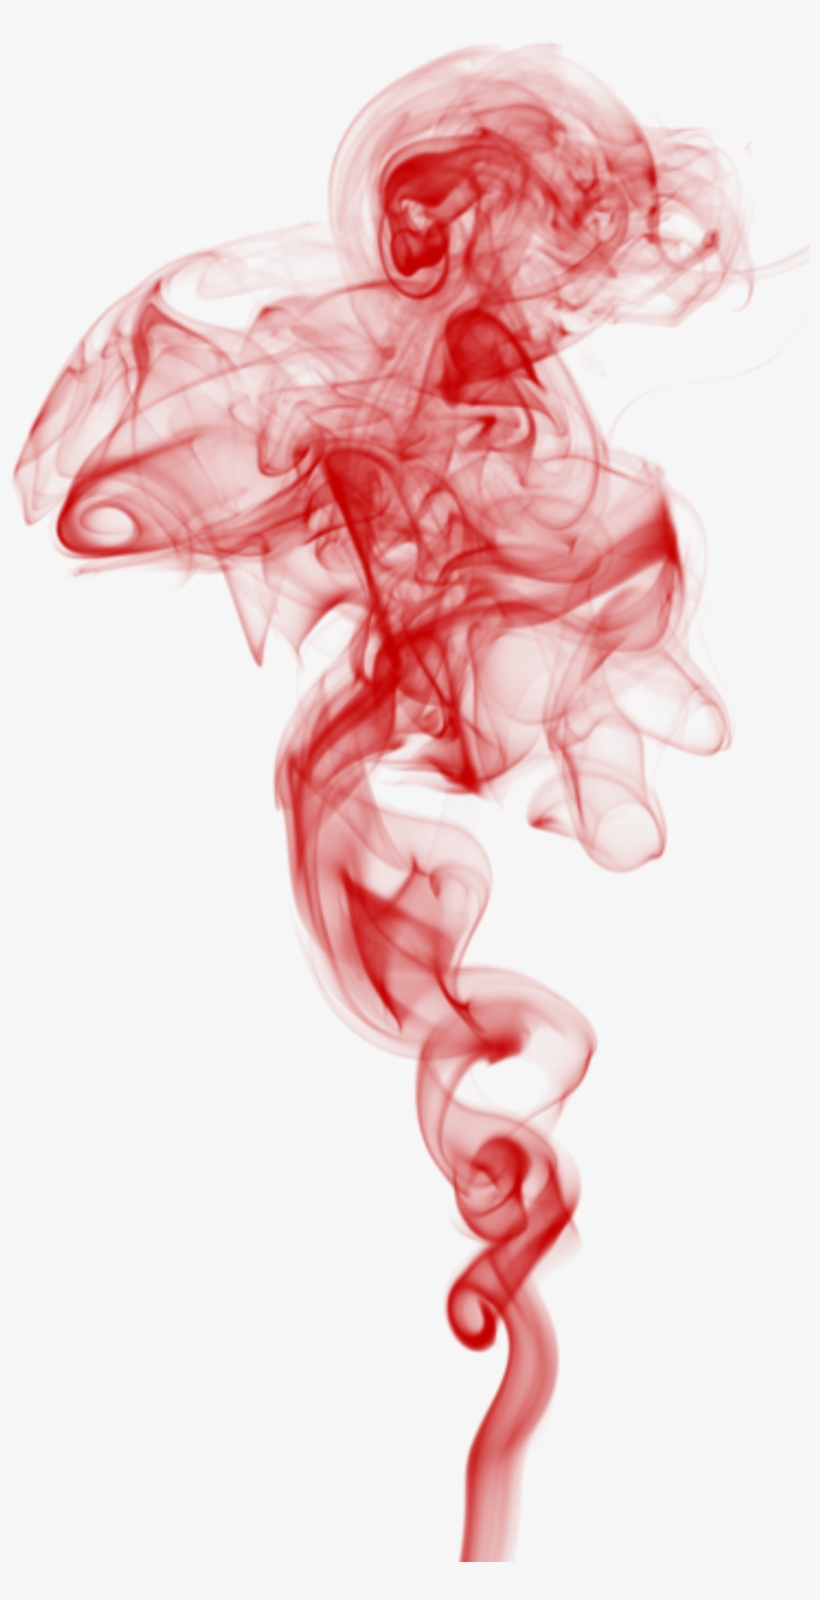 Red Effect Png : effect, Download, Transparent, Background, Smoke, Effect, Image, SeekPNG